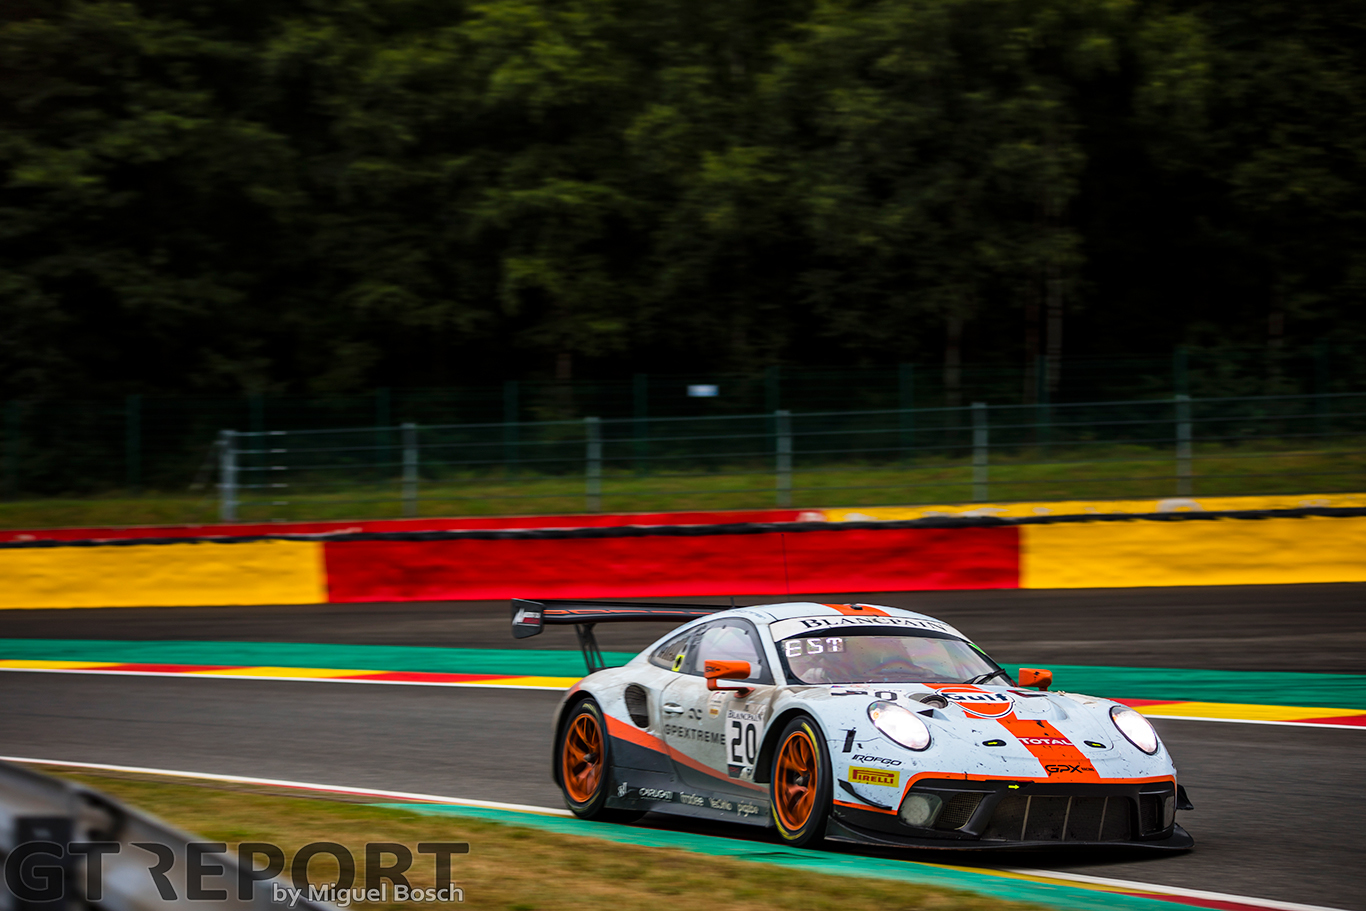 Spa 24 Hours: GPX Racing holds on to take phenomenal victory in Porsche 1-2